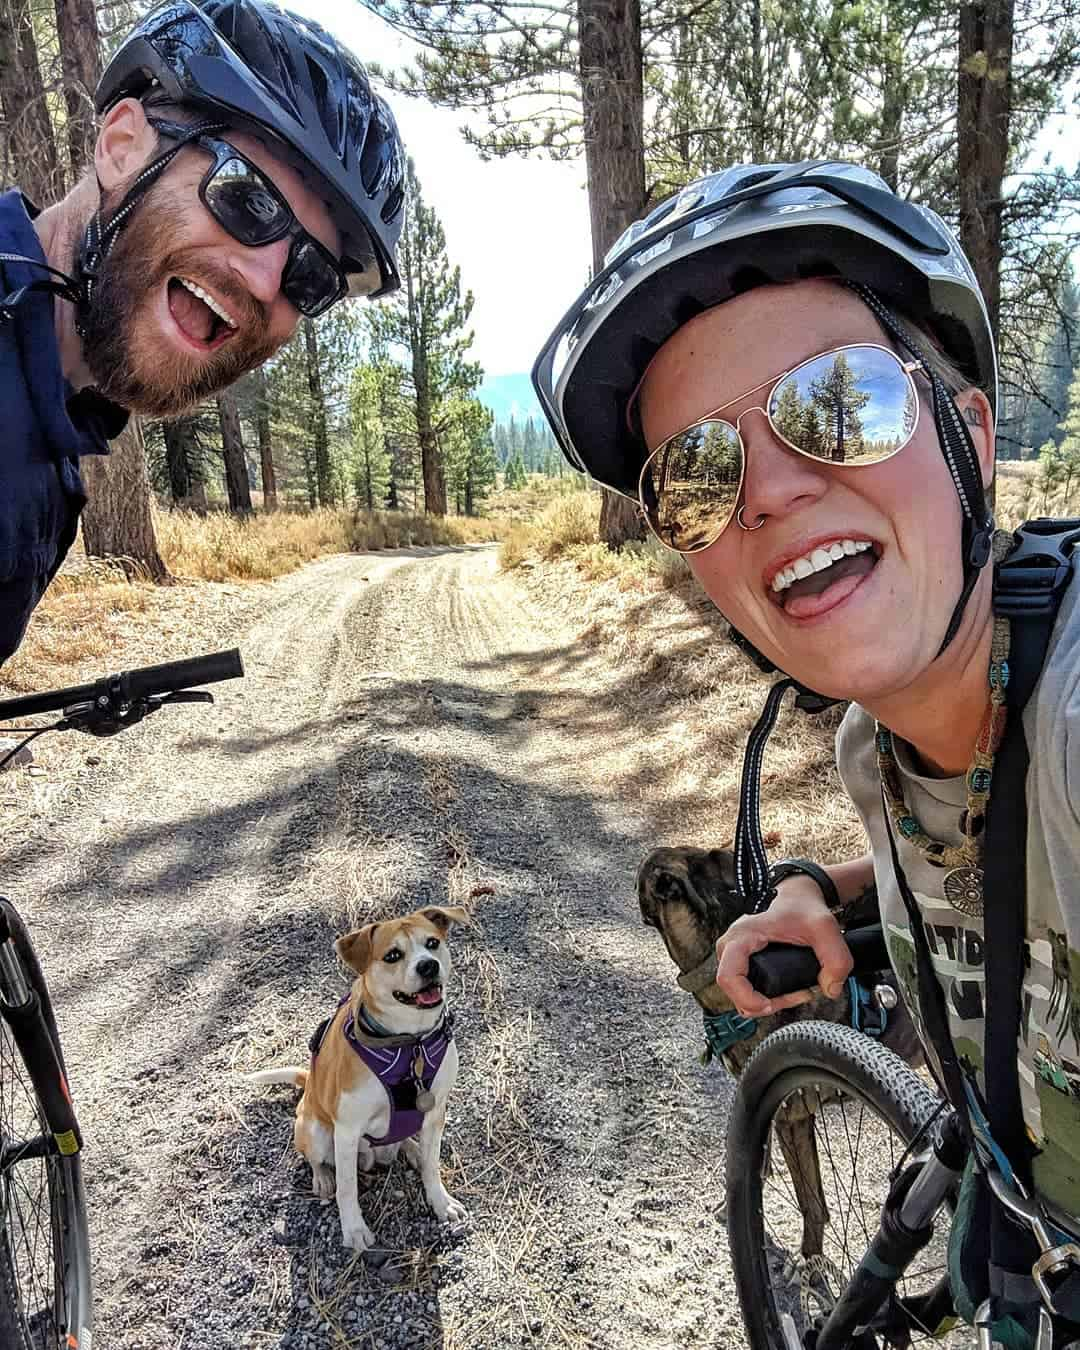 John and Jayme riding their bikes on a country road with their dog